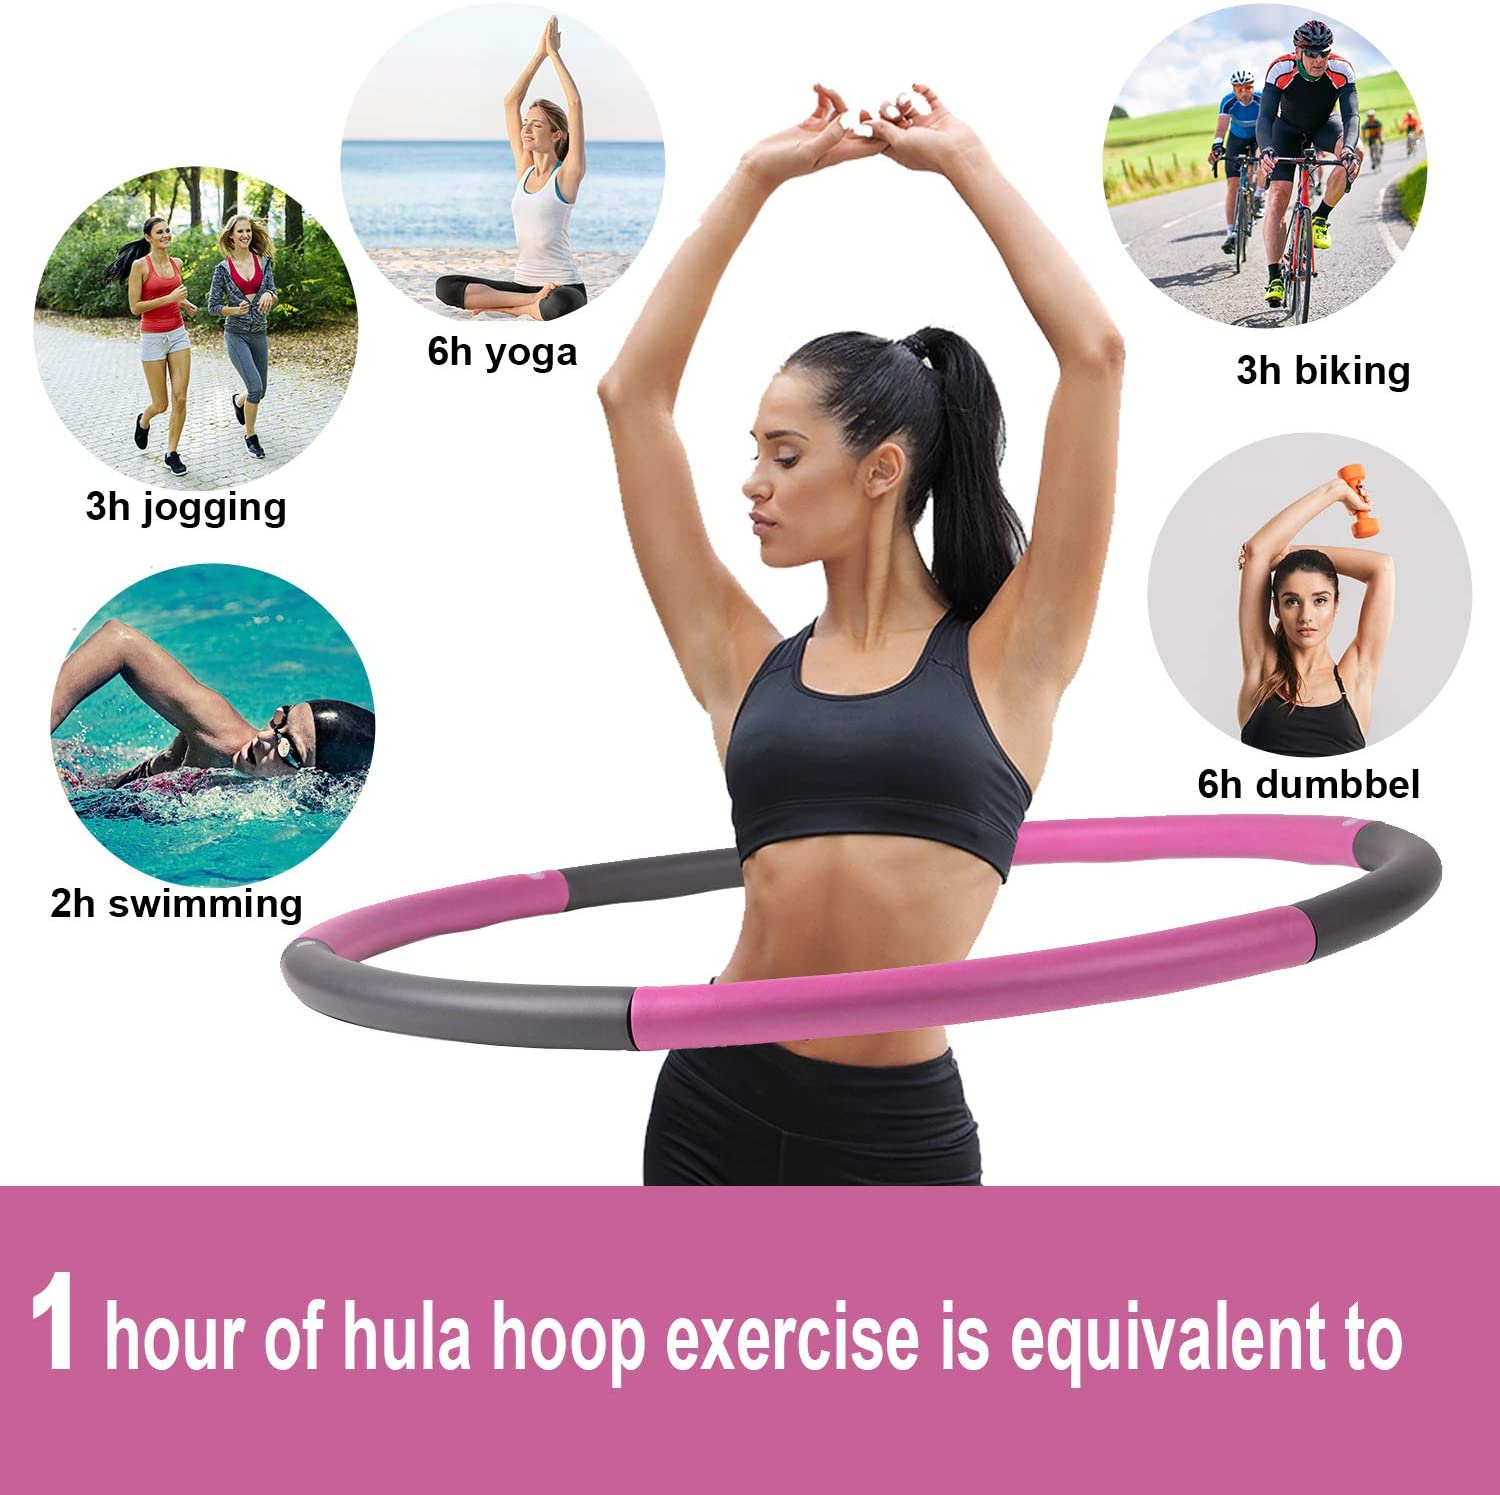 Details about  /Fitness Detachable Hula Hoop Home Exercise Lose Workout Adult Hoola USA STOCK